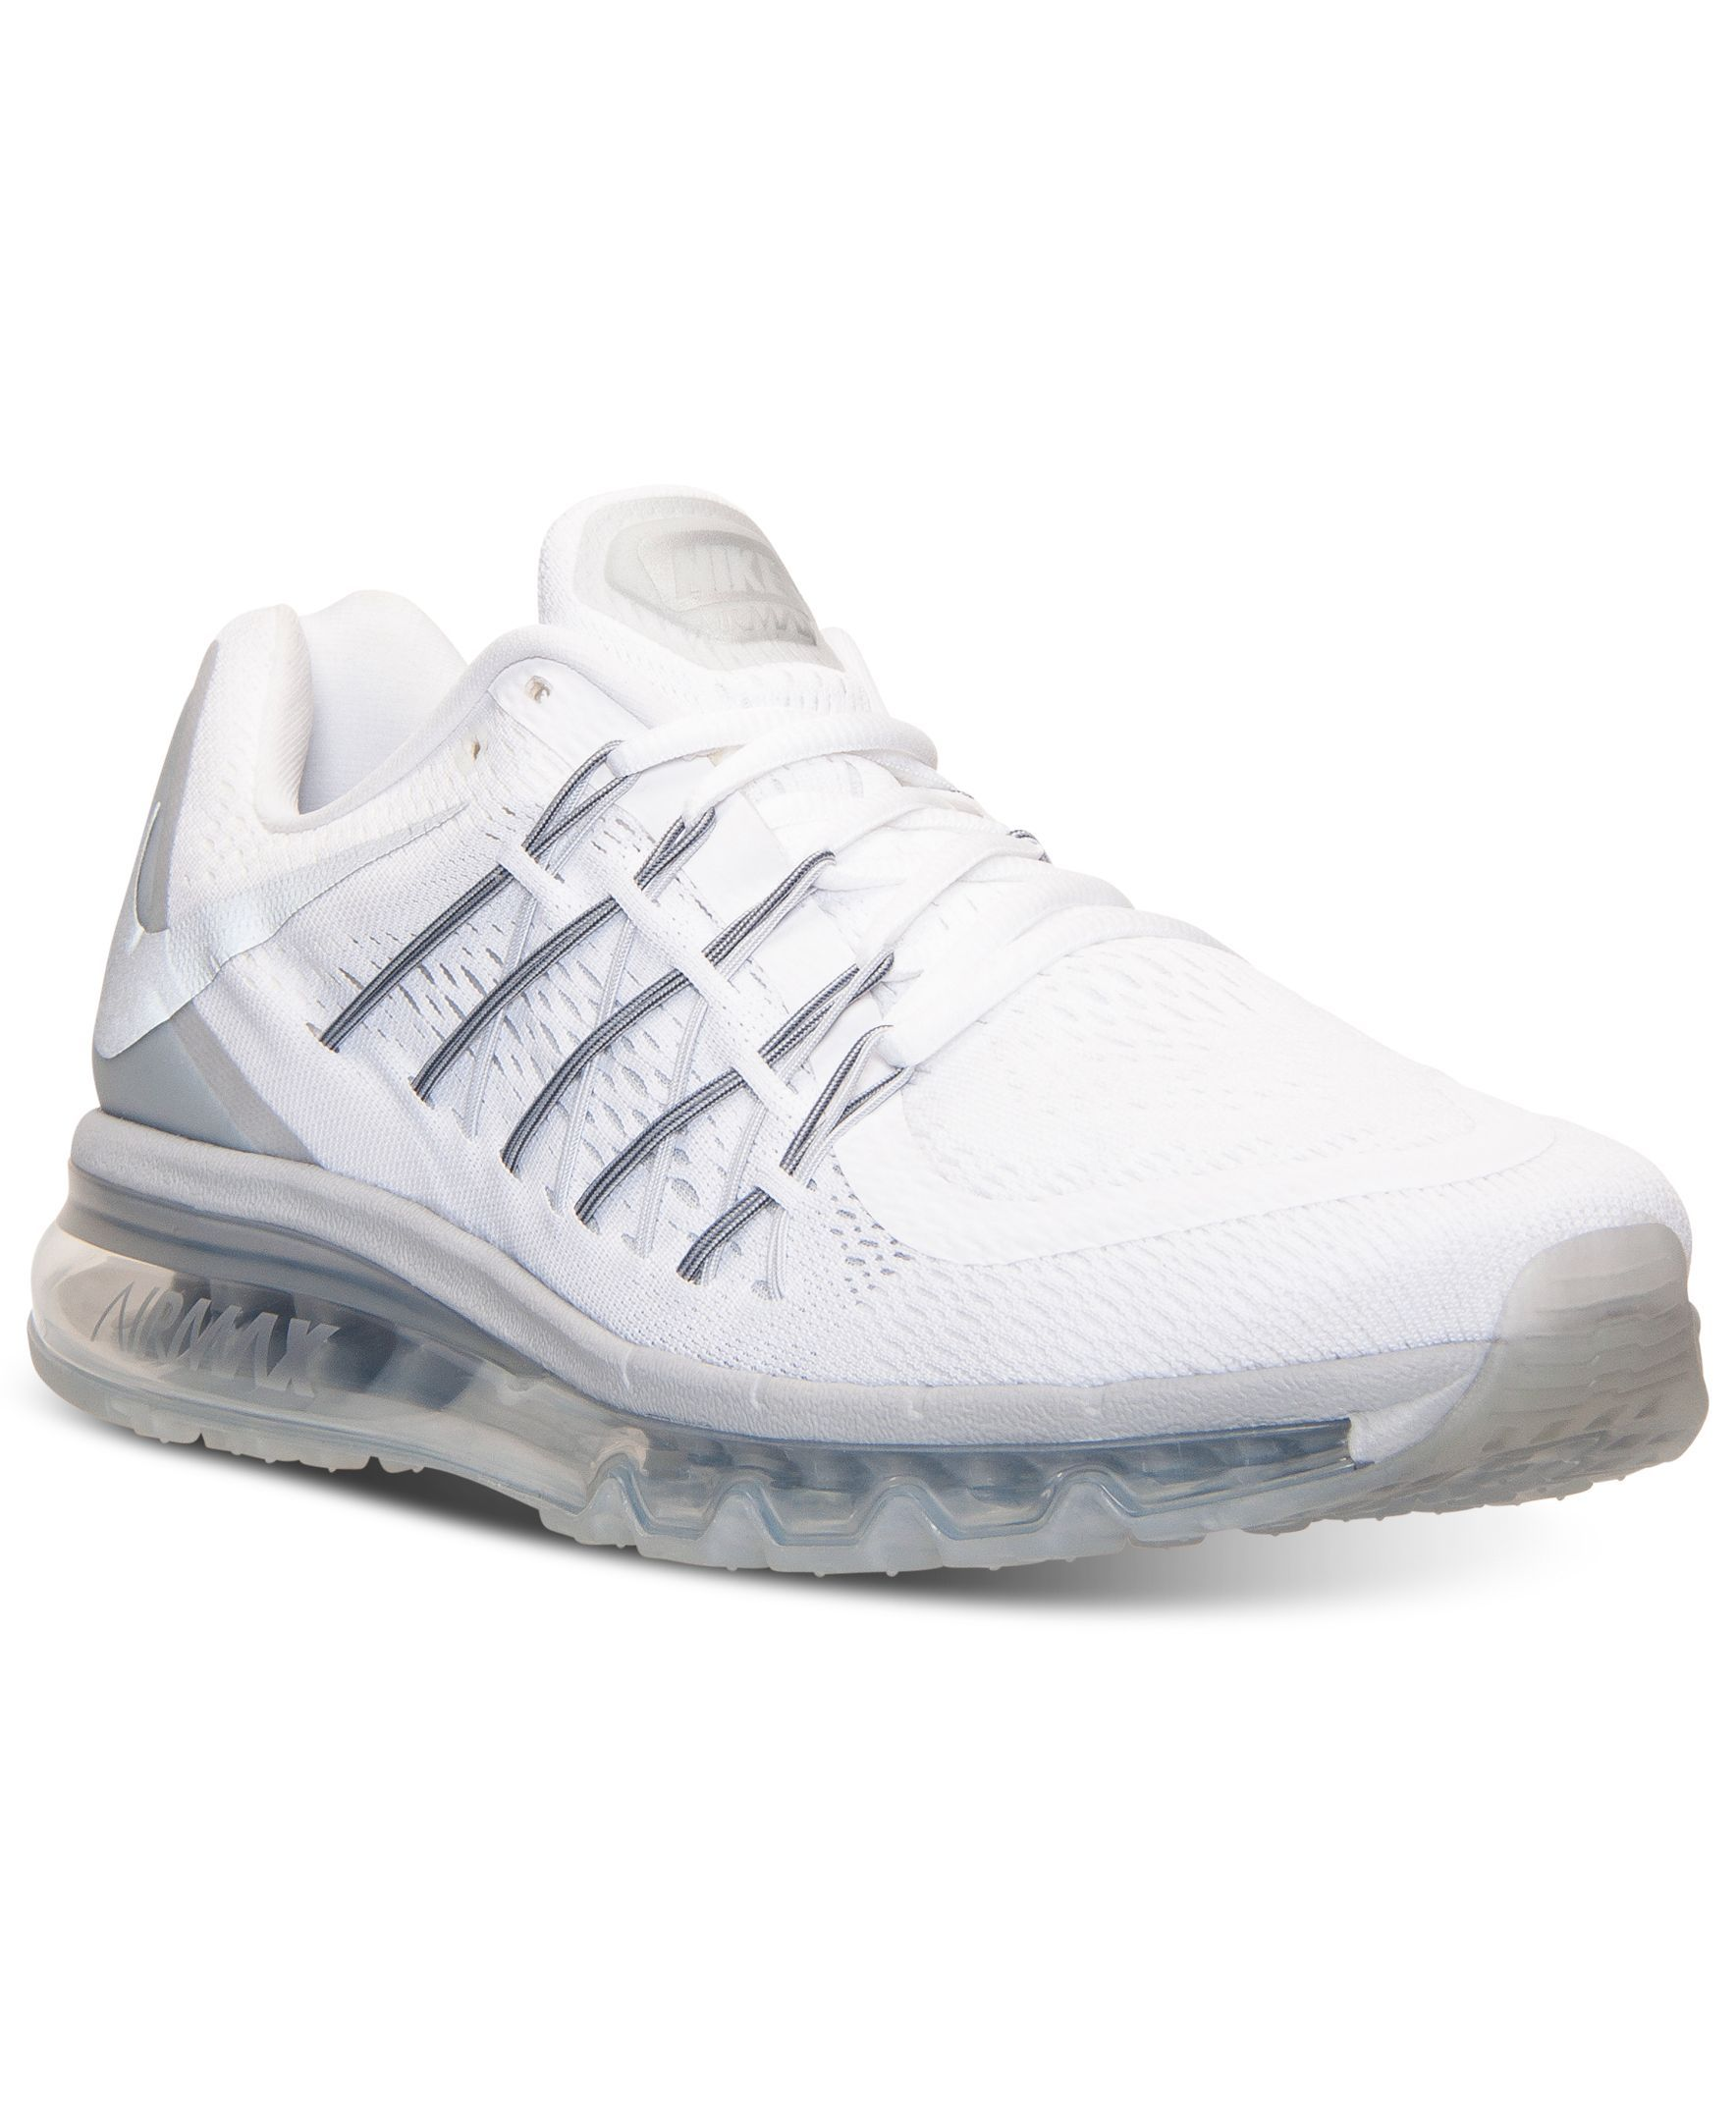 reputable site b96ec 0e5e2 Nike Men s Air Max 2015 Running Sneakers from Finish Line